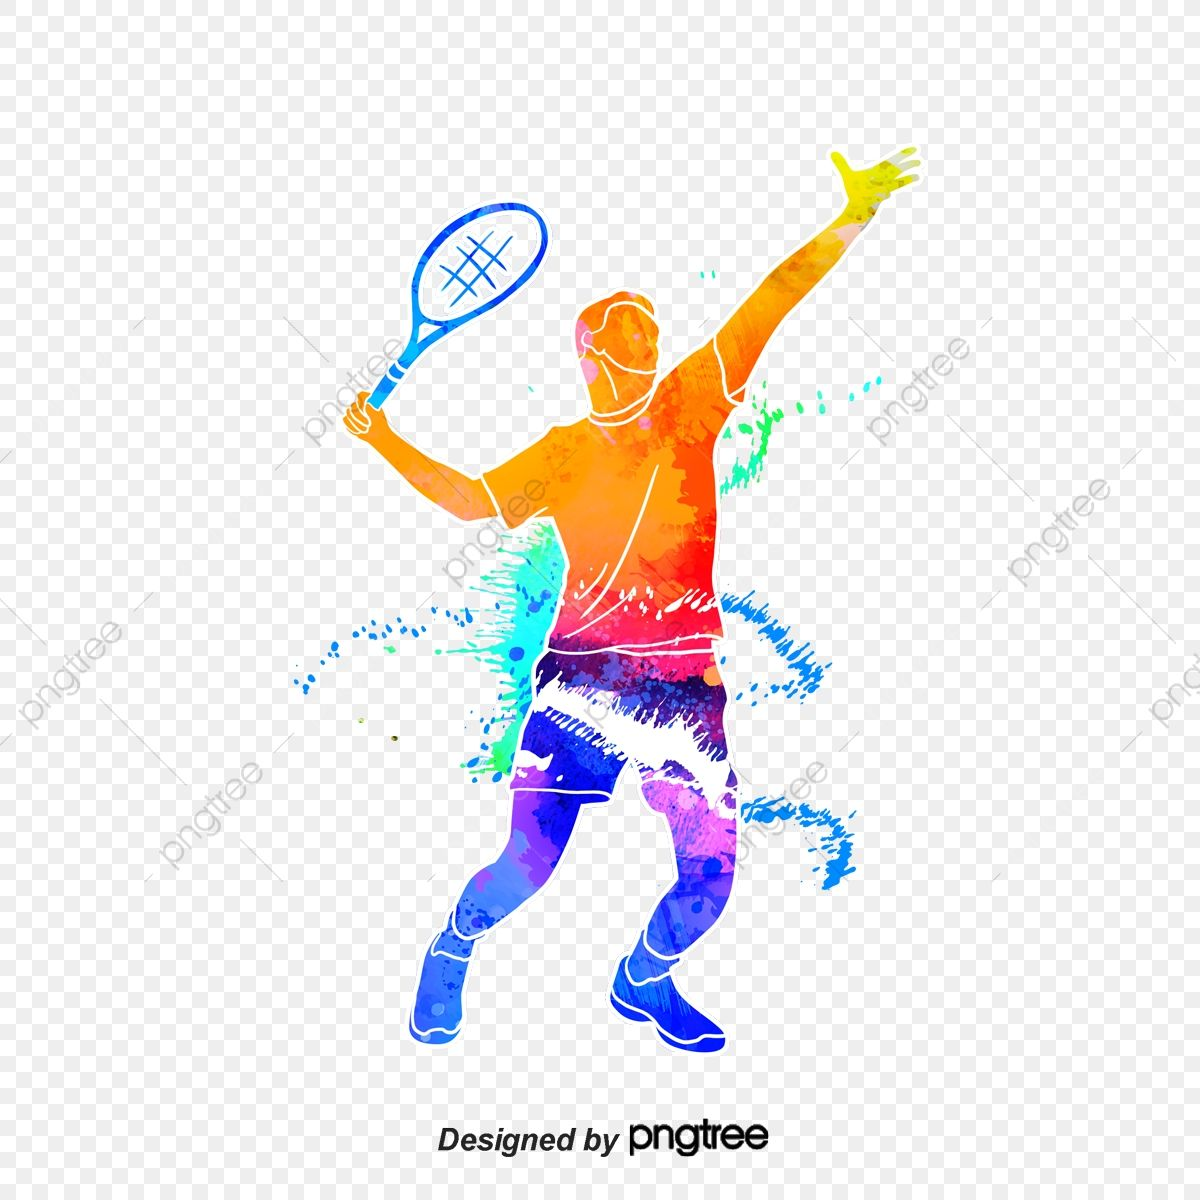 Silhouette Of Creative Tennis Players Multicolored Character Sports Png Transparent Clipart Image And Psd File In 2020 Tennis Players Sports Images Dance Background